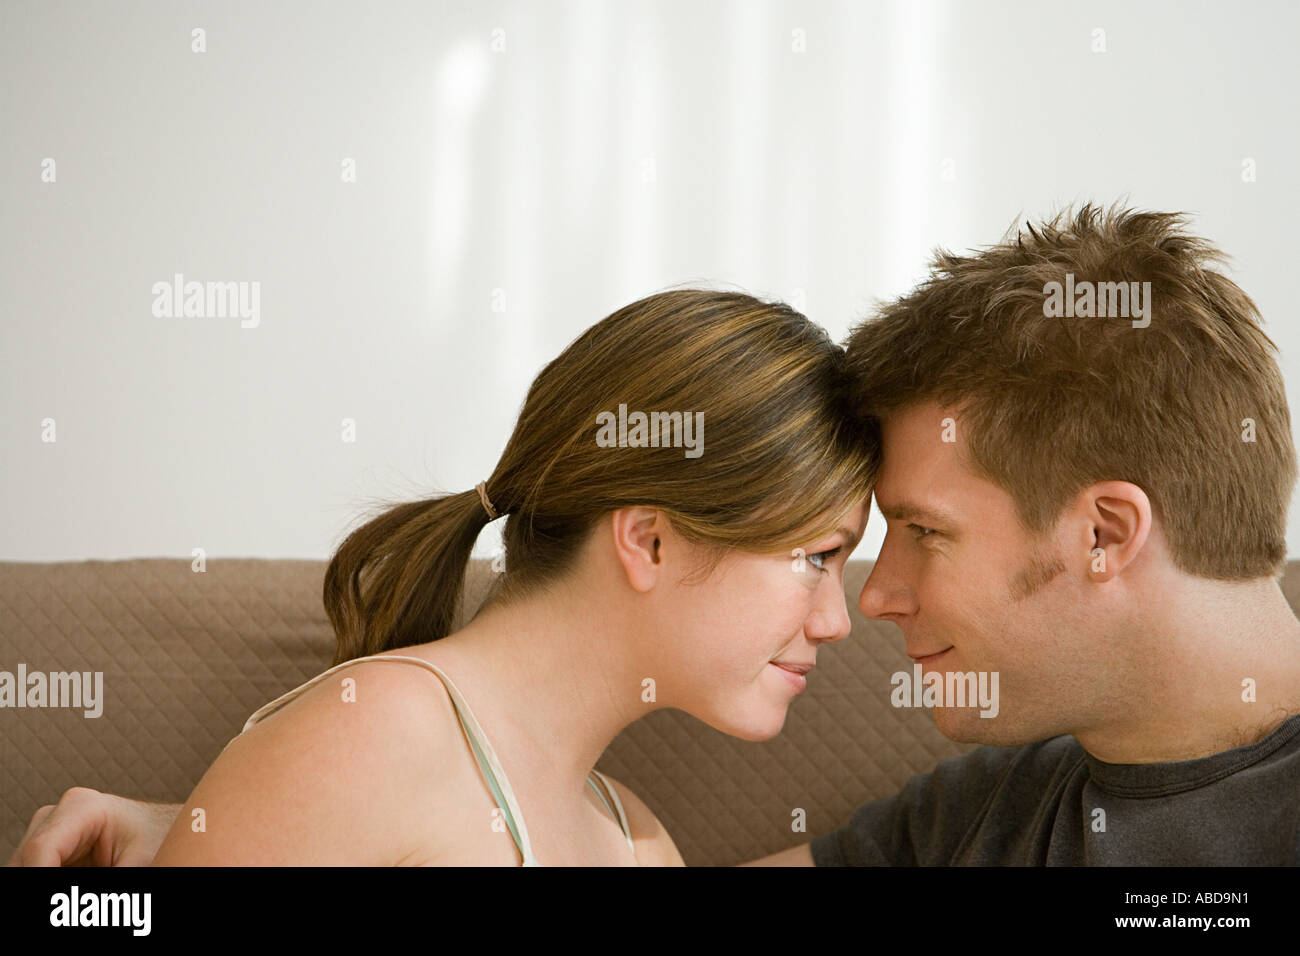 Couple touching foreheads - Stock Image